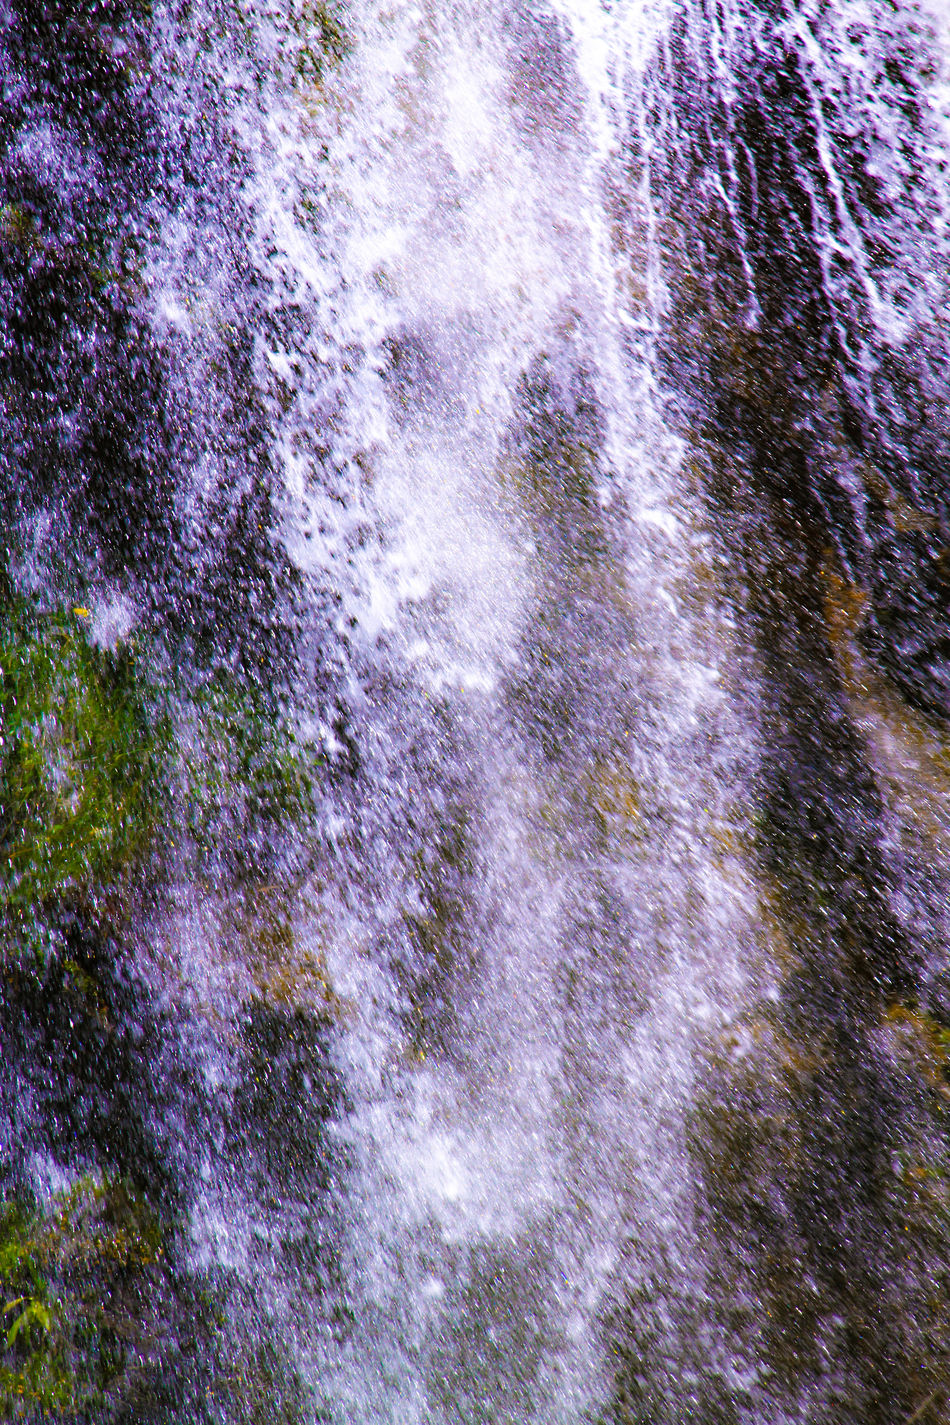 Pirineo Check This Out EyeEm Gallery Waterfall Waterfalls Waterfall Mist Waterfall_collection Abstract Abstractions In Colors Nature Nature_collection Pirineo Aragonés Sallent De Gallego Patterns In Nature